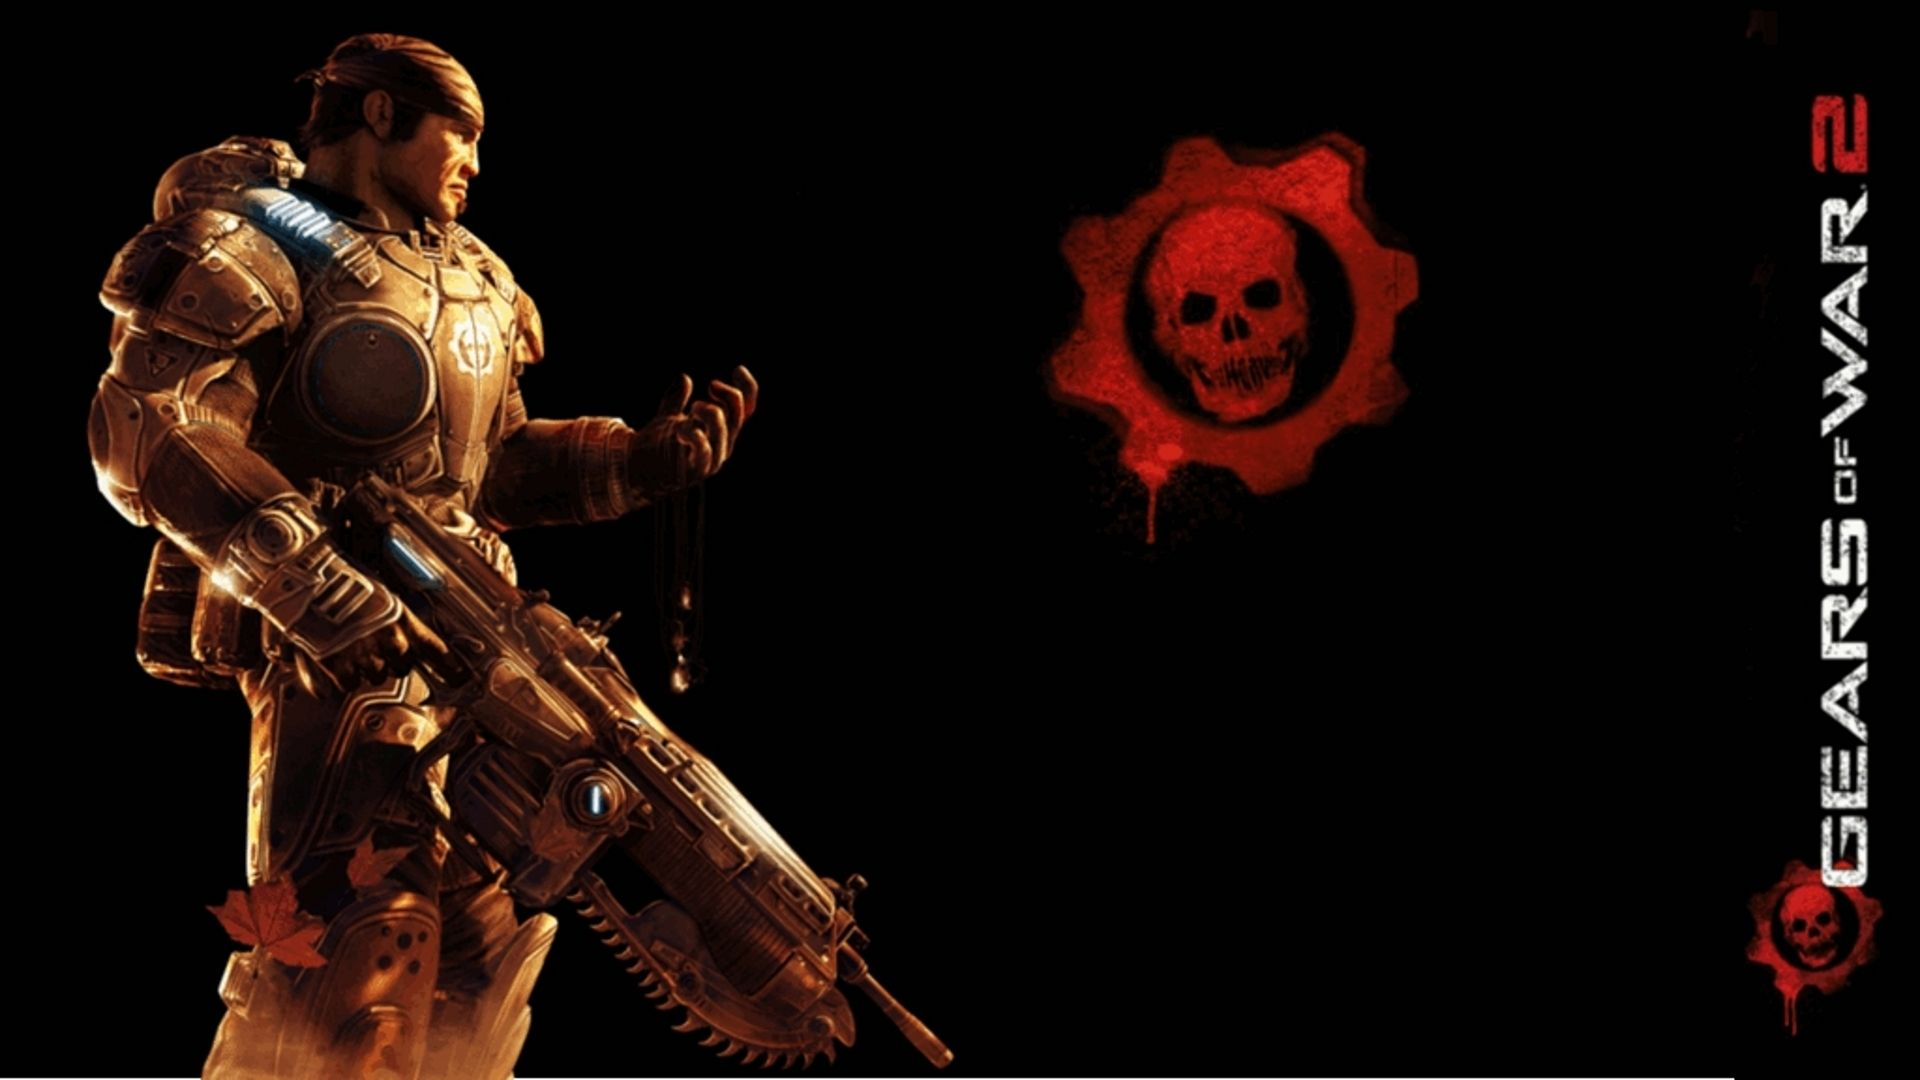 gears of war 2 wallpaper hd-4 | proyectos que intentar | pinterest